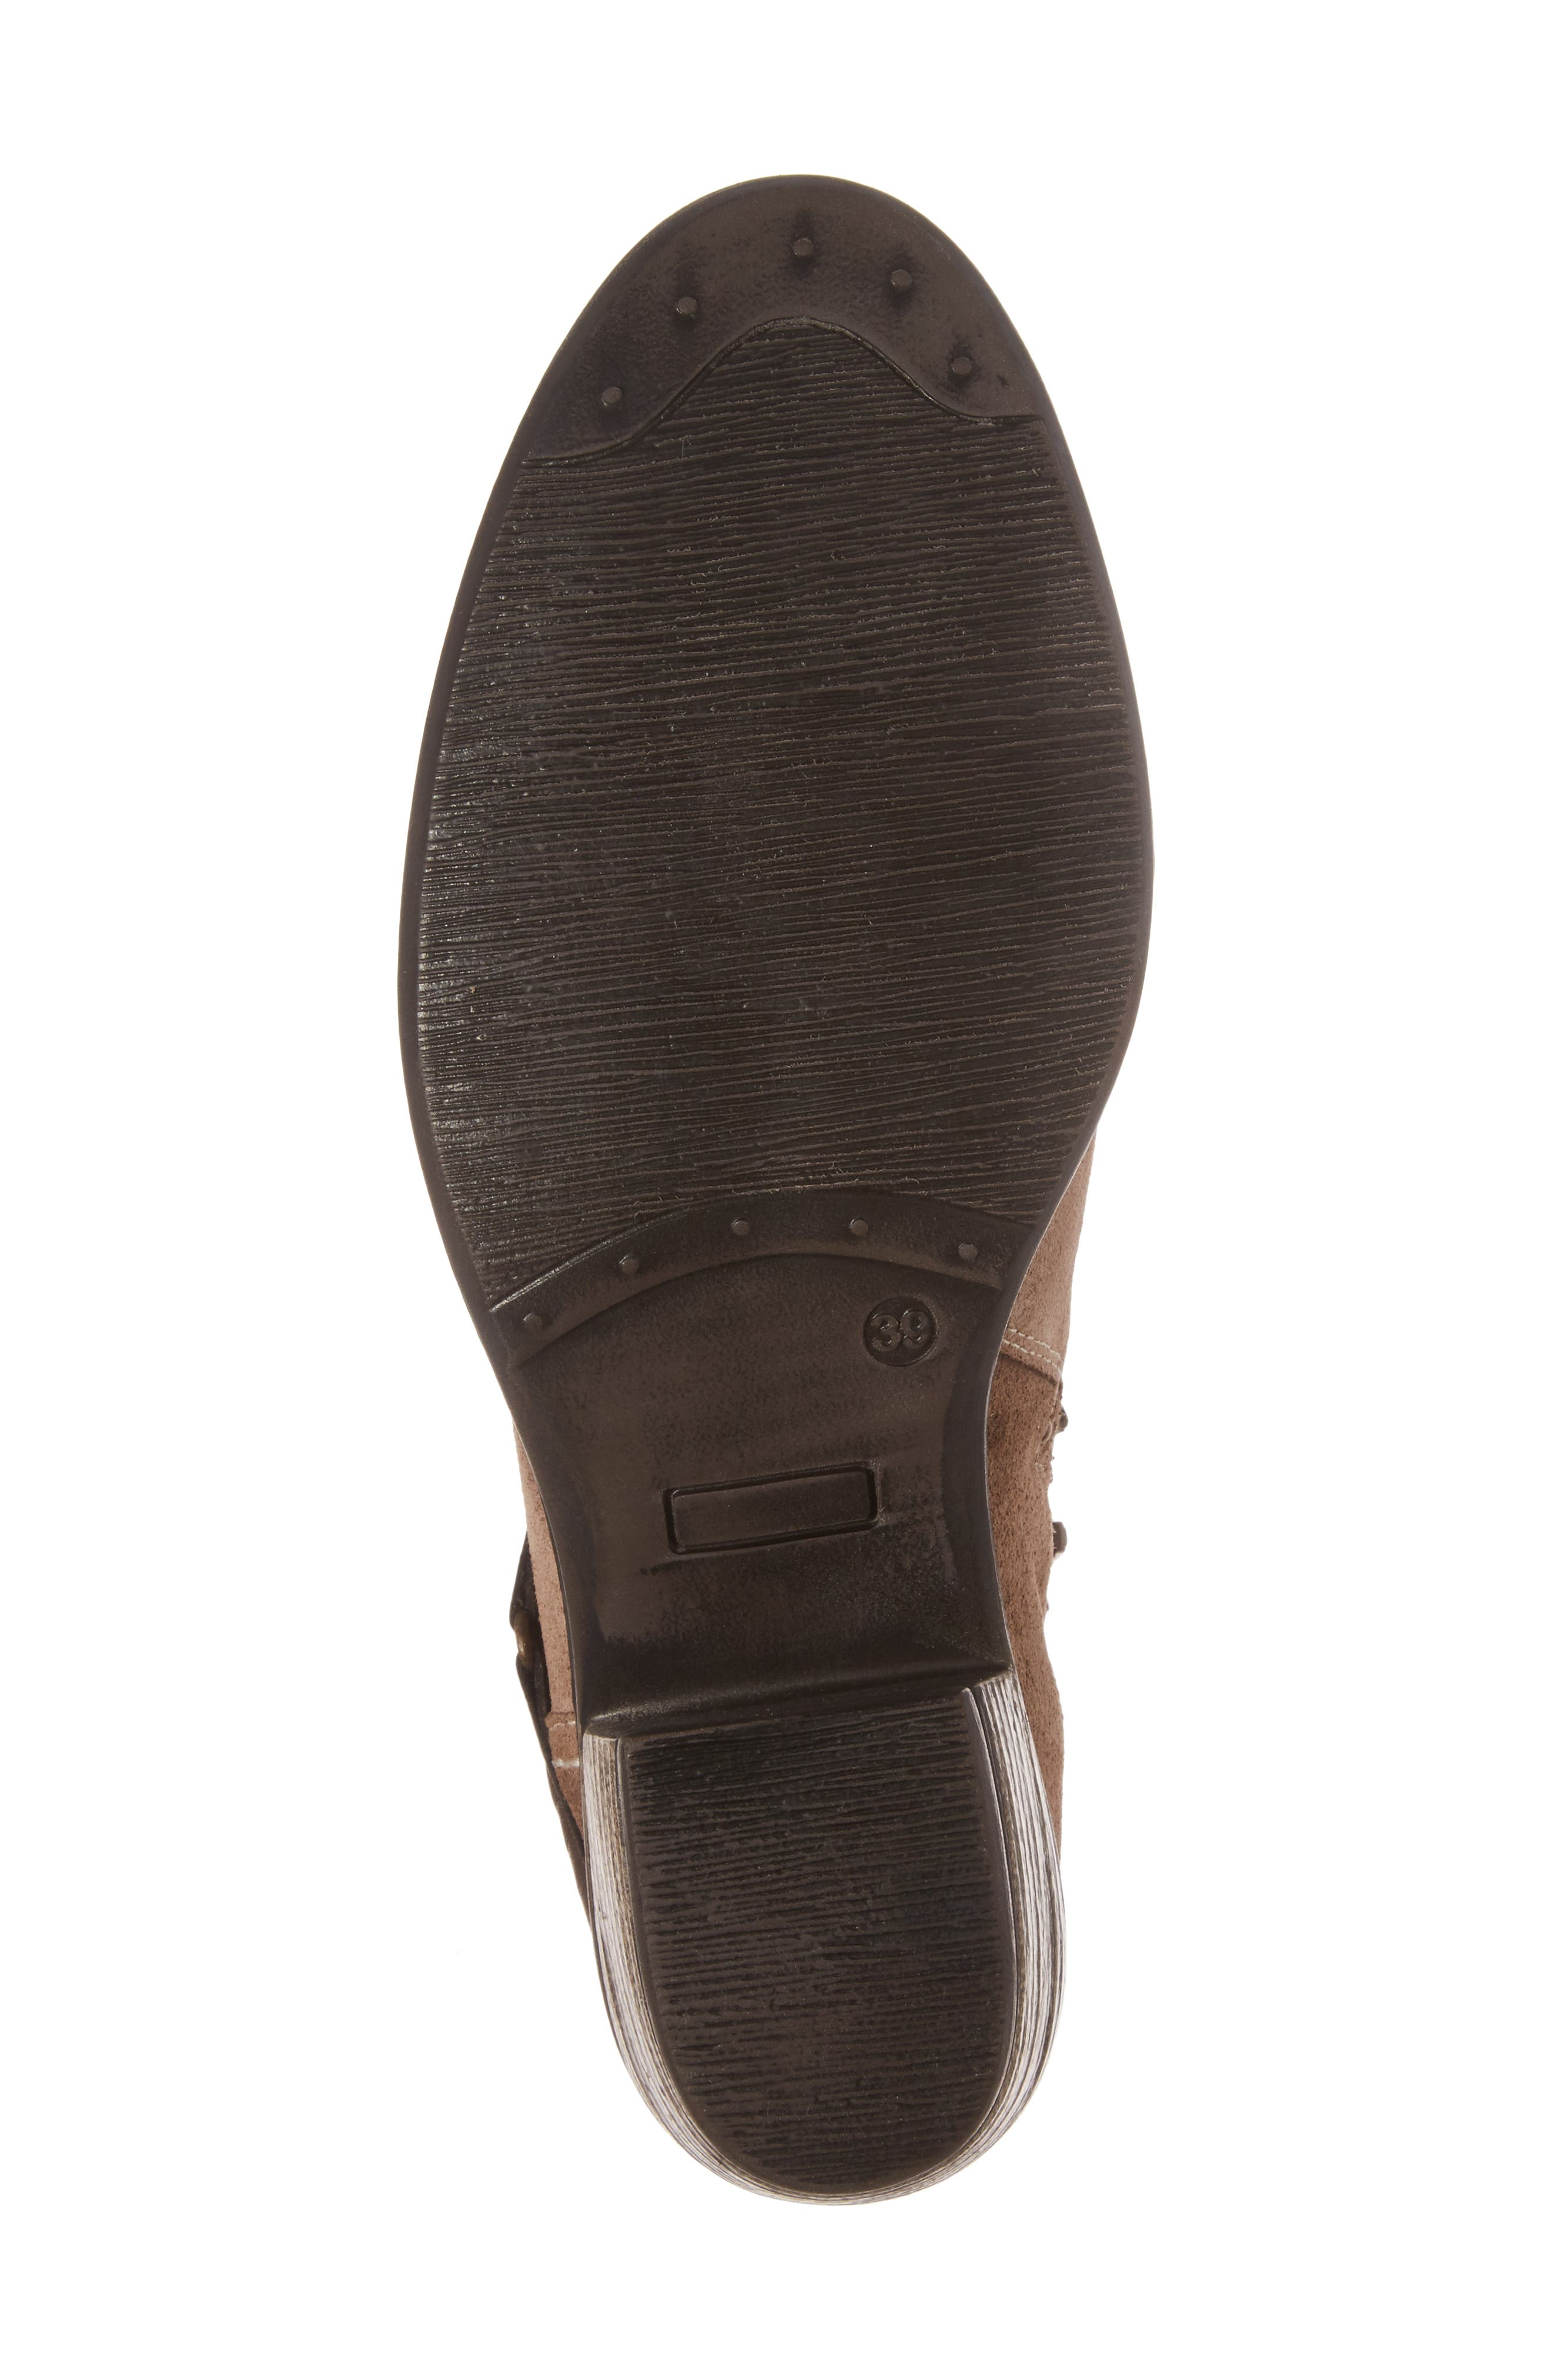 Greenville Waterproof Bootie,                             Alternate thumbnail 6, color,                             Taupe